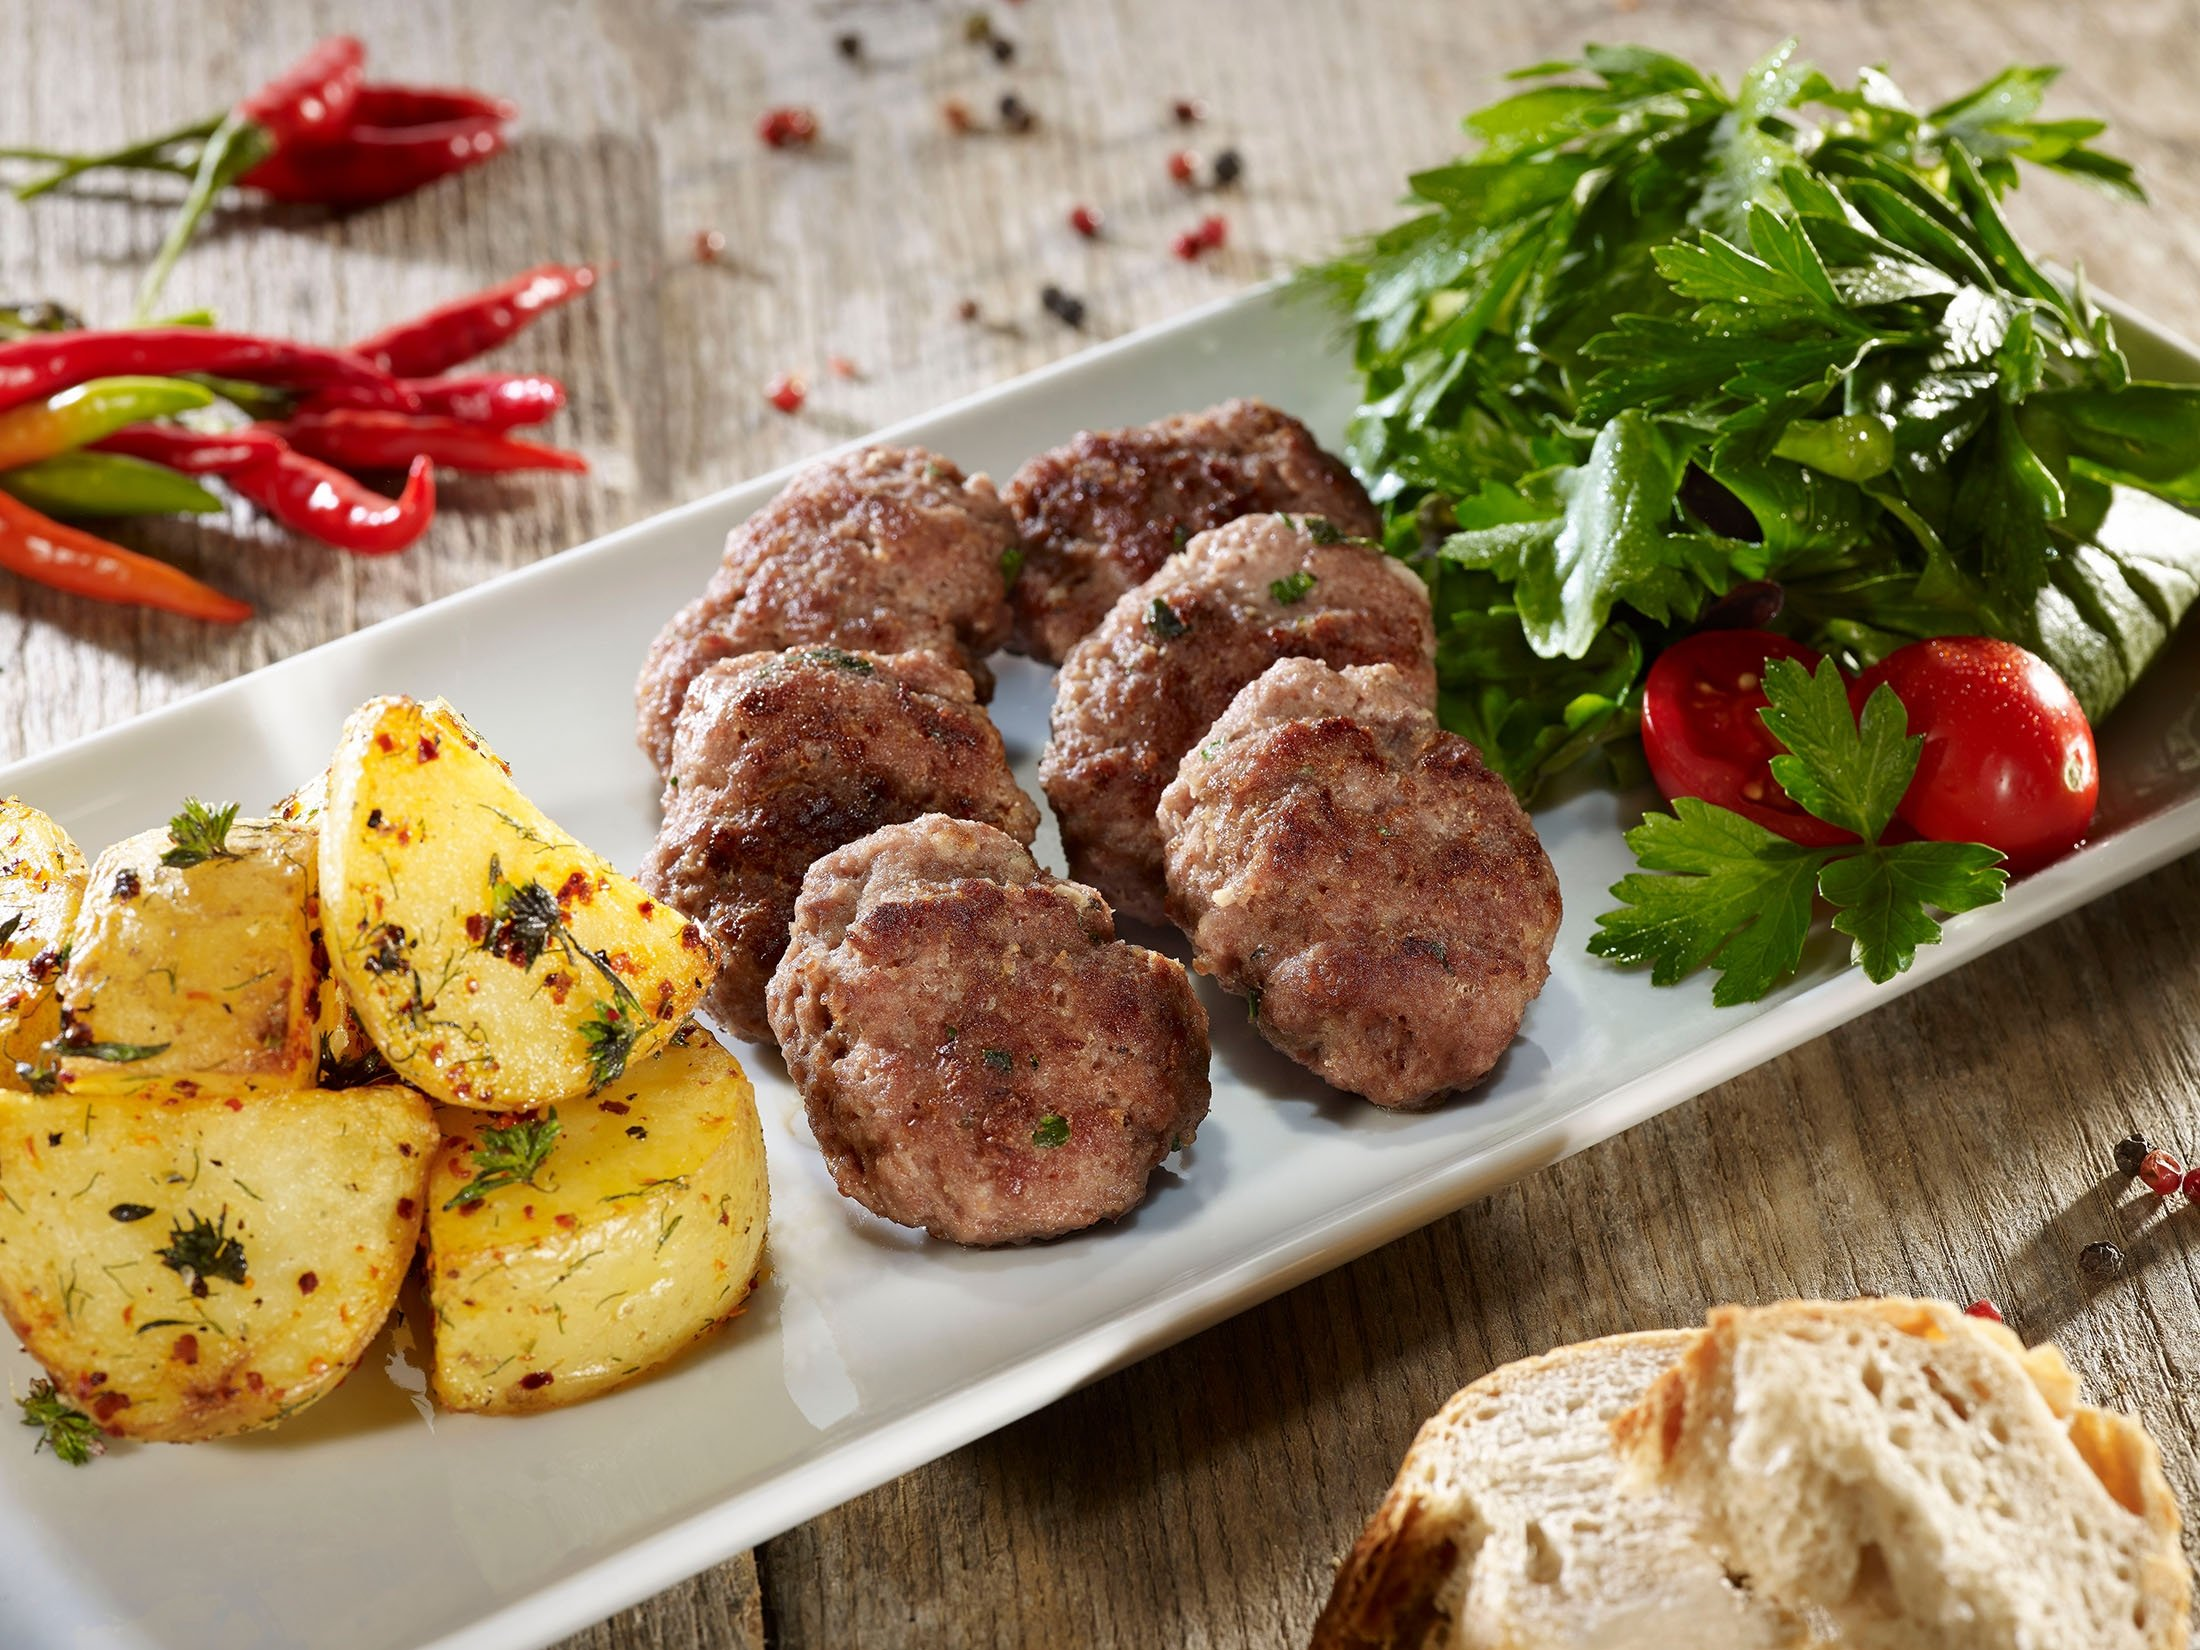 Some classic mum-made köftes go great with a salad and potato wedges. (Shutterstock Photo)